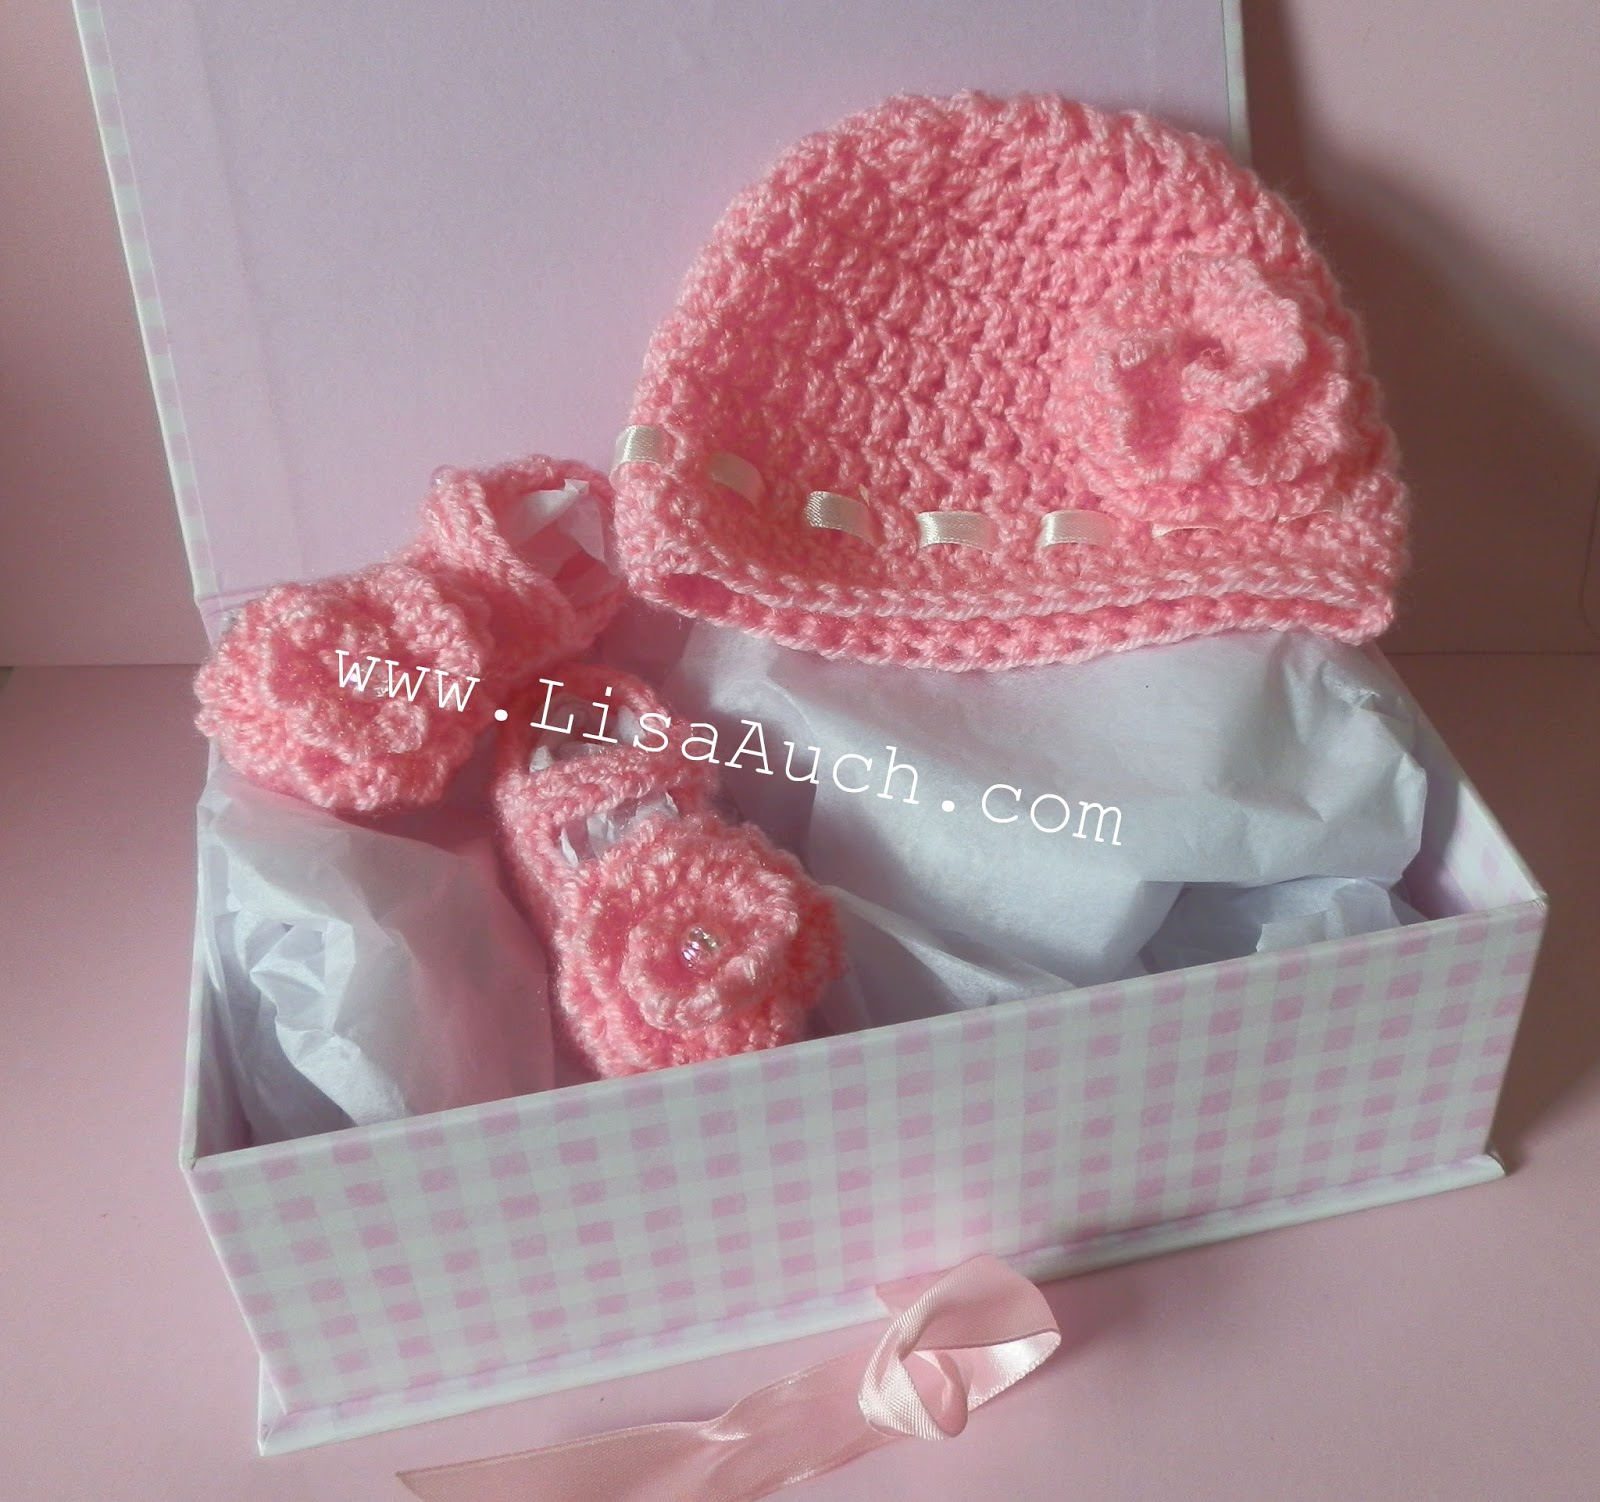 Free Crochet Patterns For Newborn Baby Hats : Need Some patterns for baby set